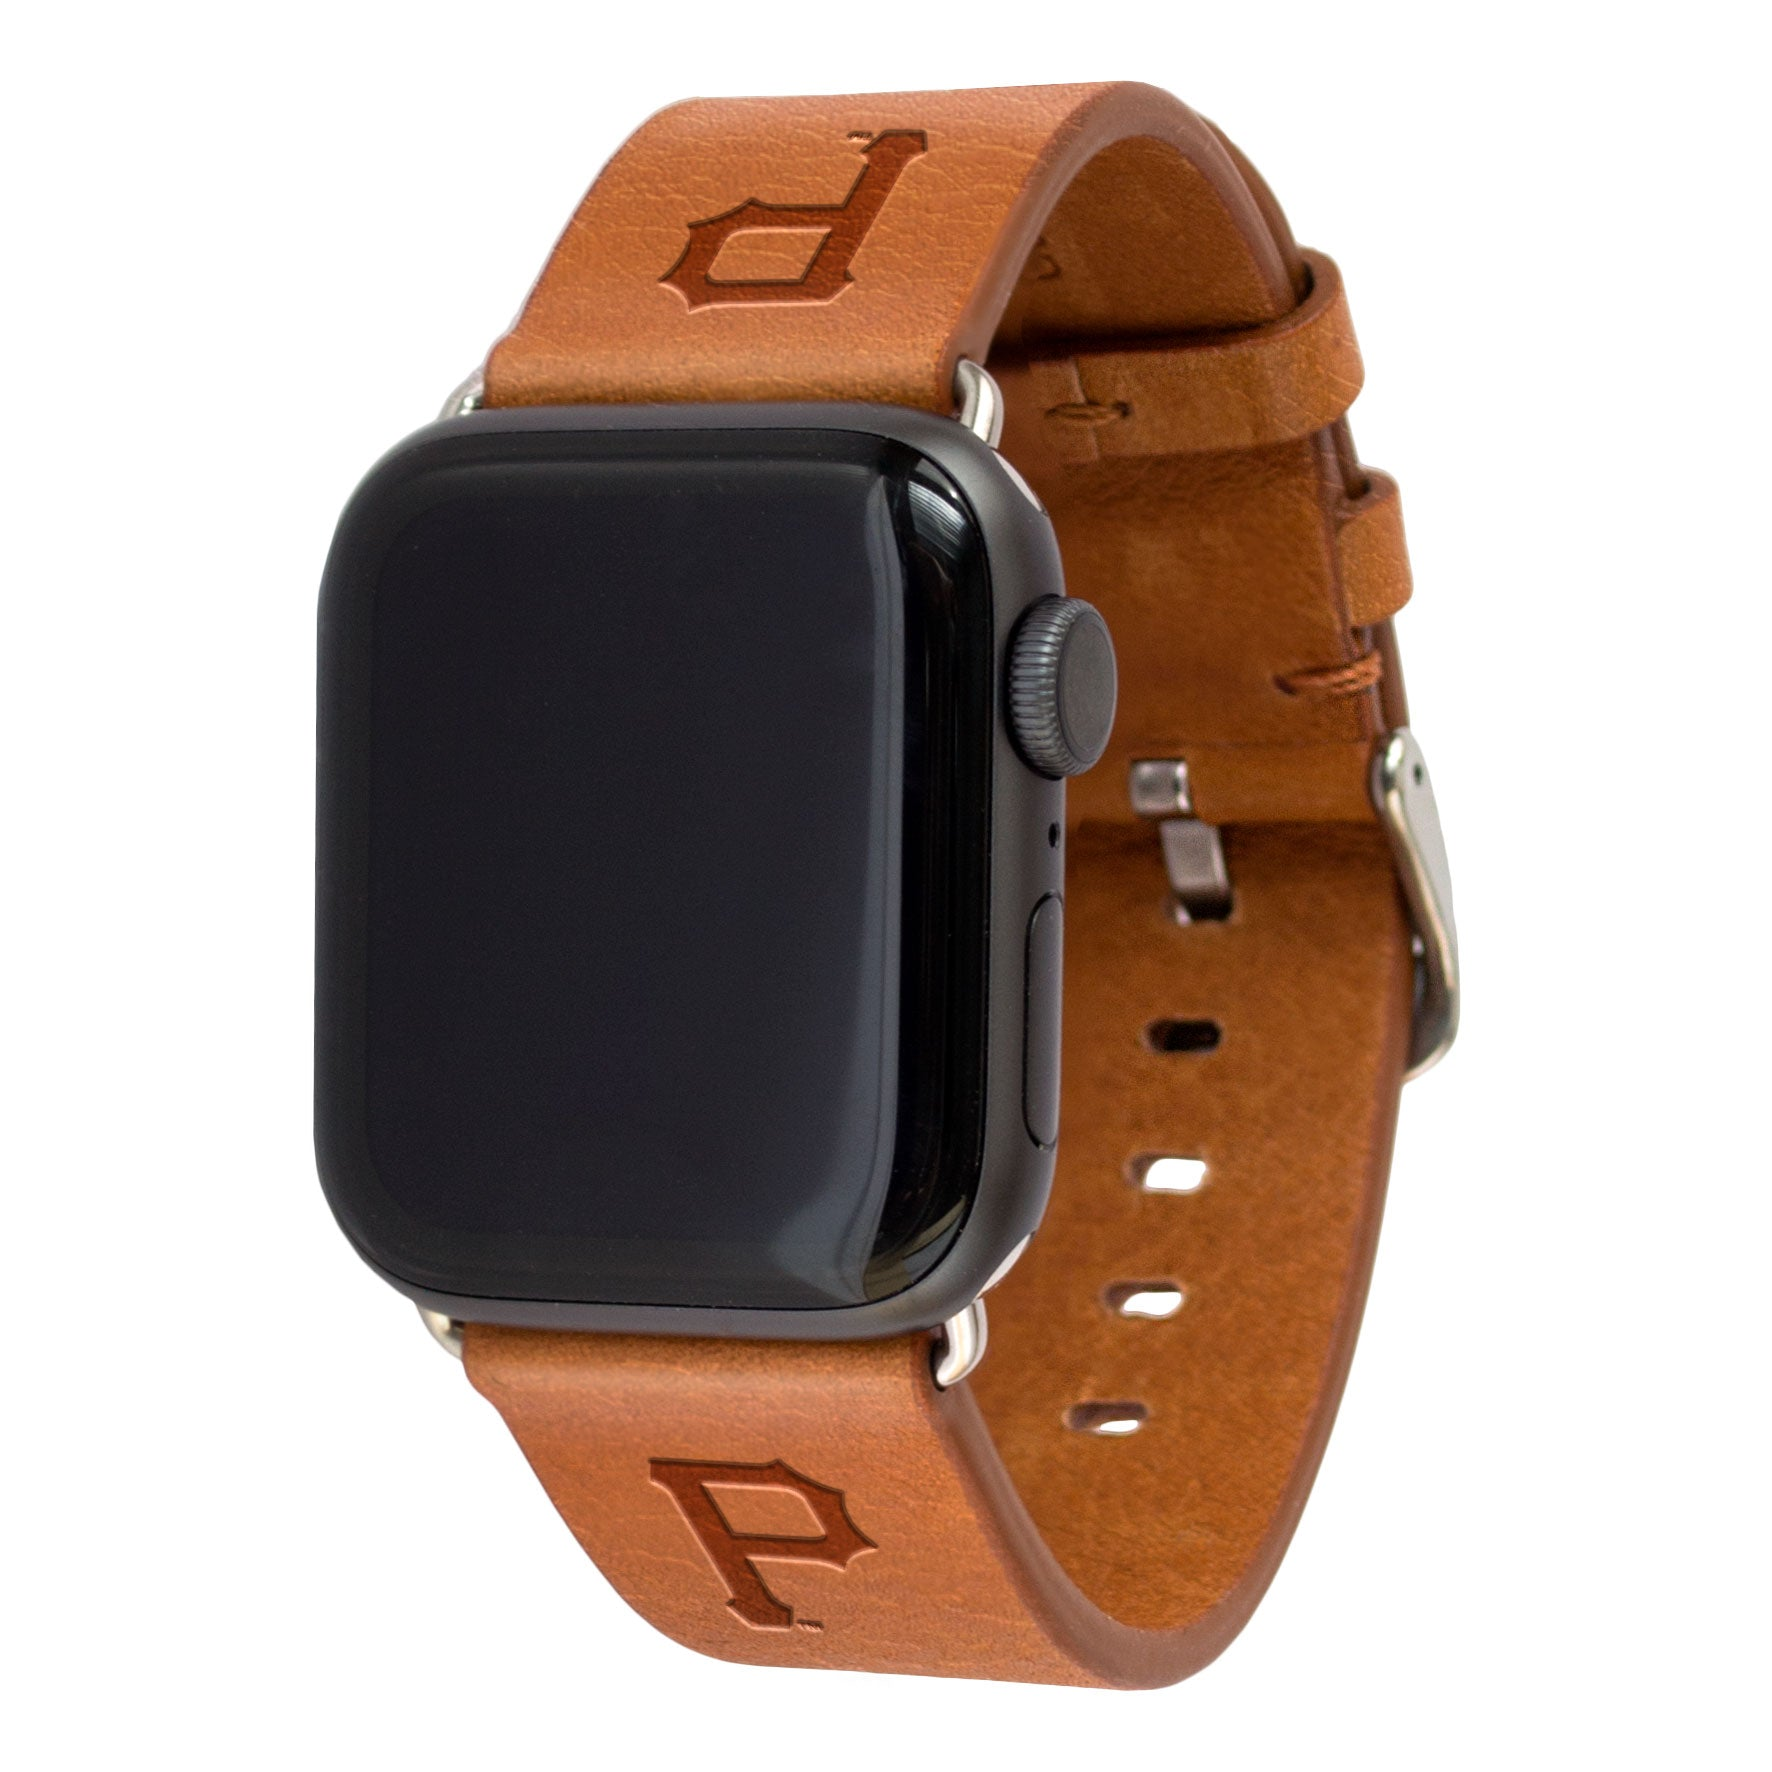 Pittsburgh Pirates Leather Band Compatible with Apple Watch